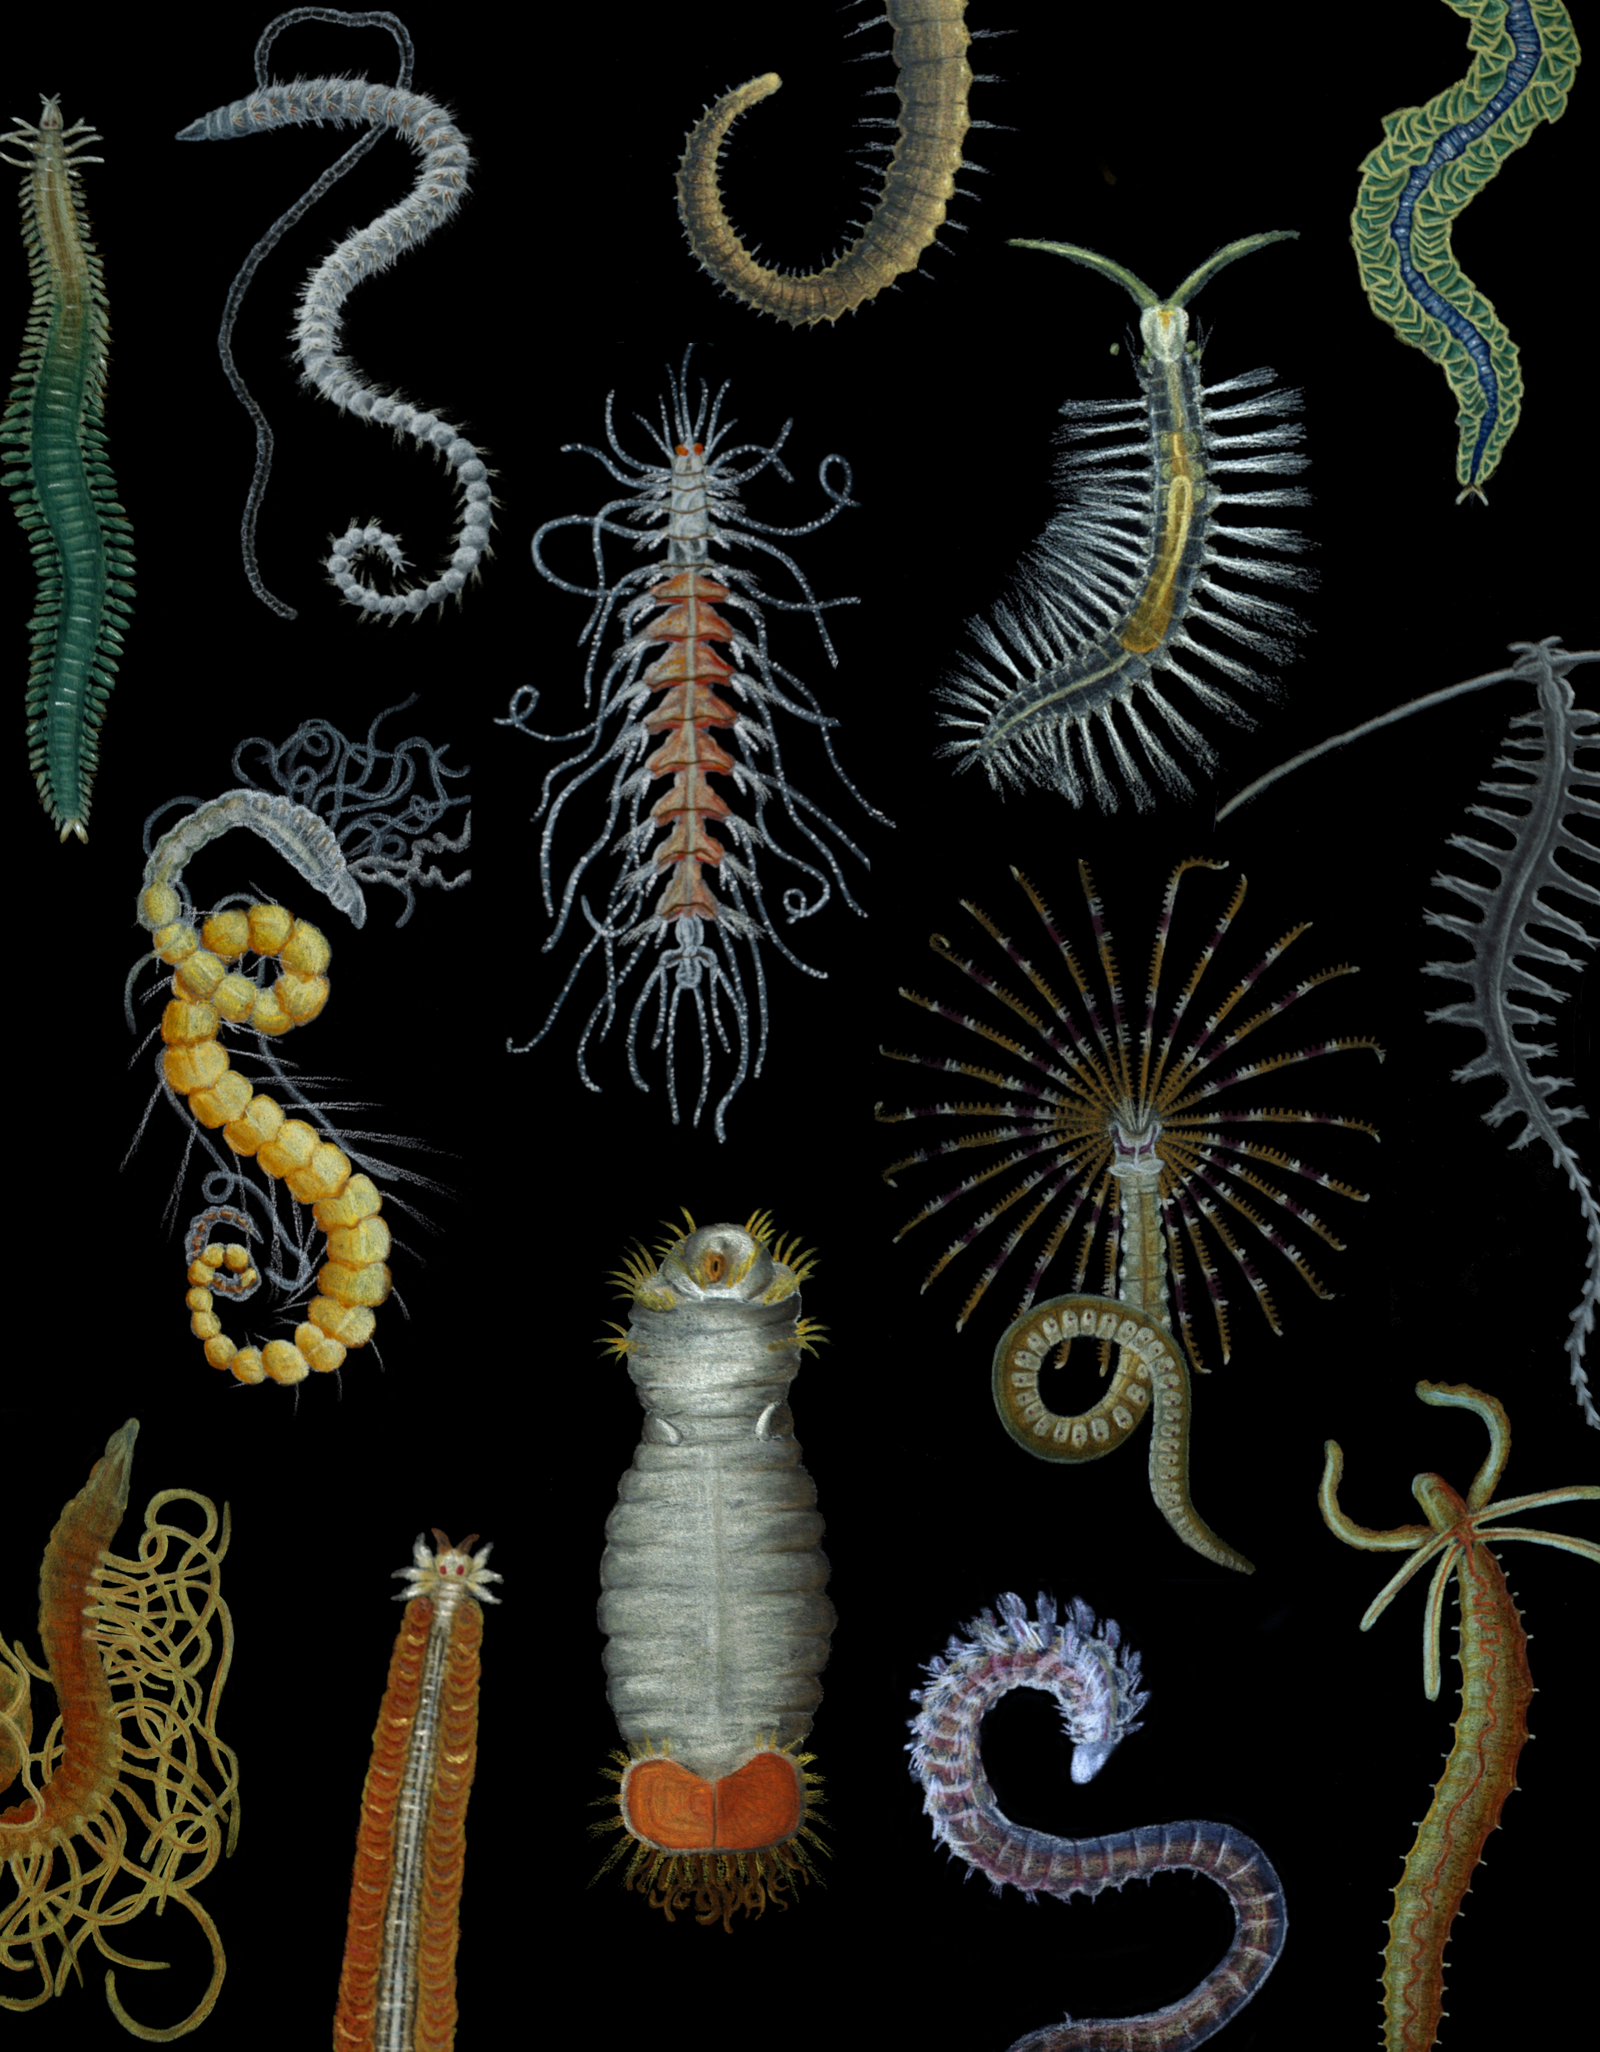 Coloured plate showing the diversity of annelids